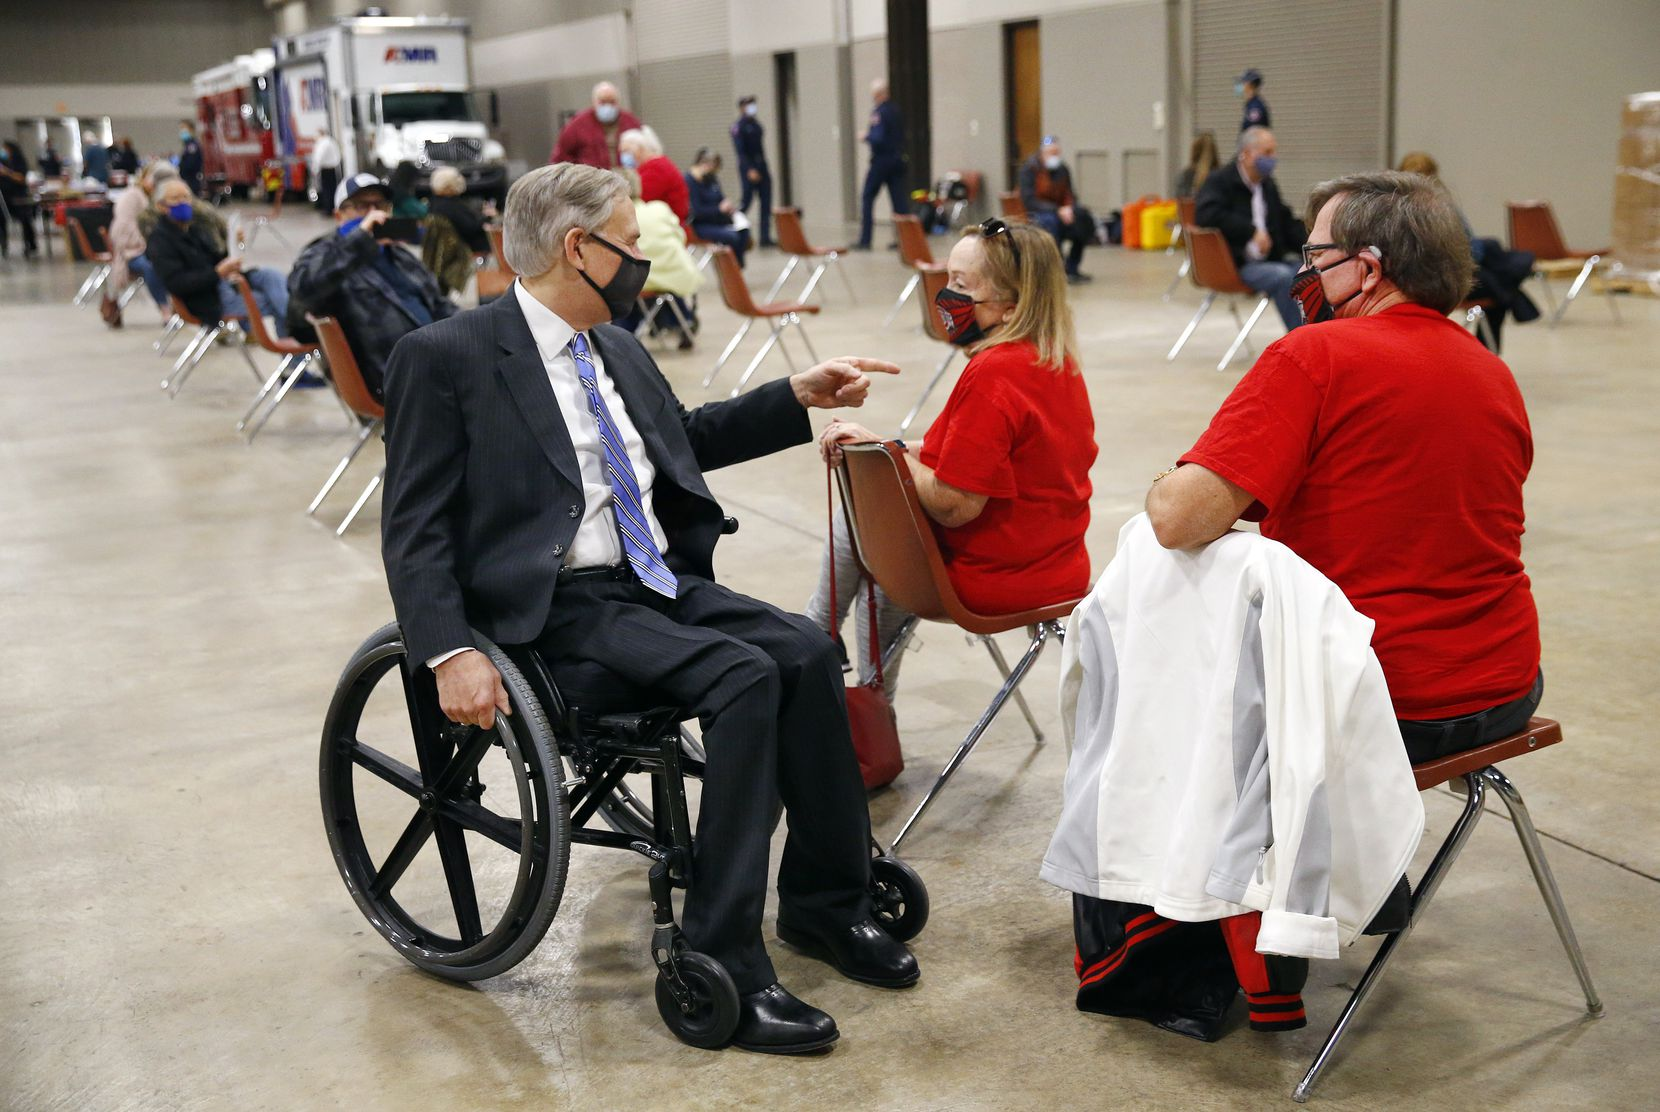 Texas Governor Greg Abbott (left visits with Michael and Sara Cramer of Arlington in a waiting area after receiving their COVID-19 shots at a mass COVID-19 vaccination site at the Esports Stadium Arlington & Expo Center in Arlington, Texas, Monday, January 11, 2021. (Tom Fox/The Dallas Morning News)